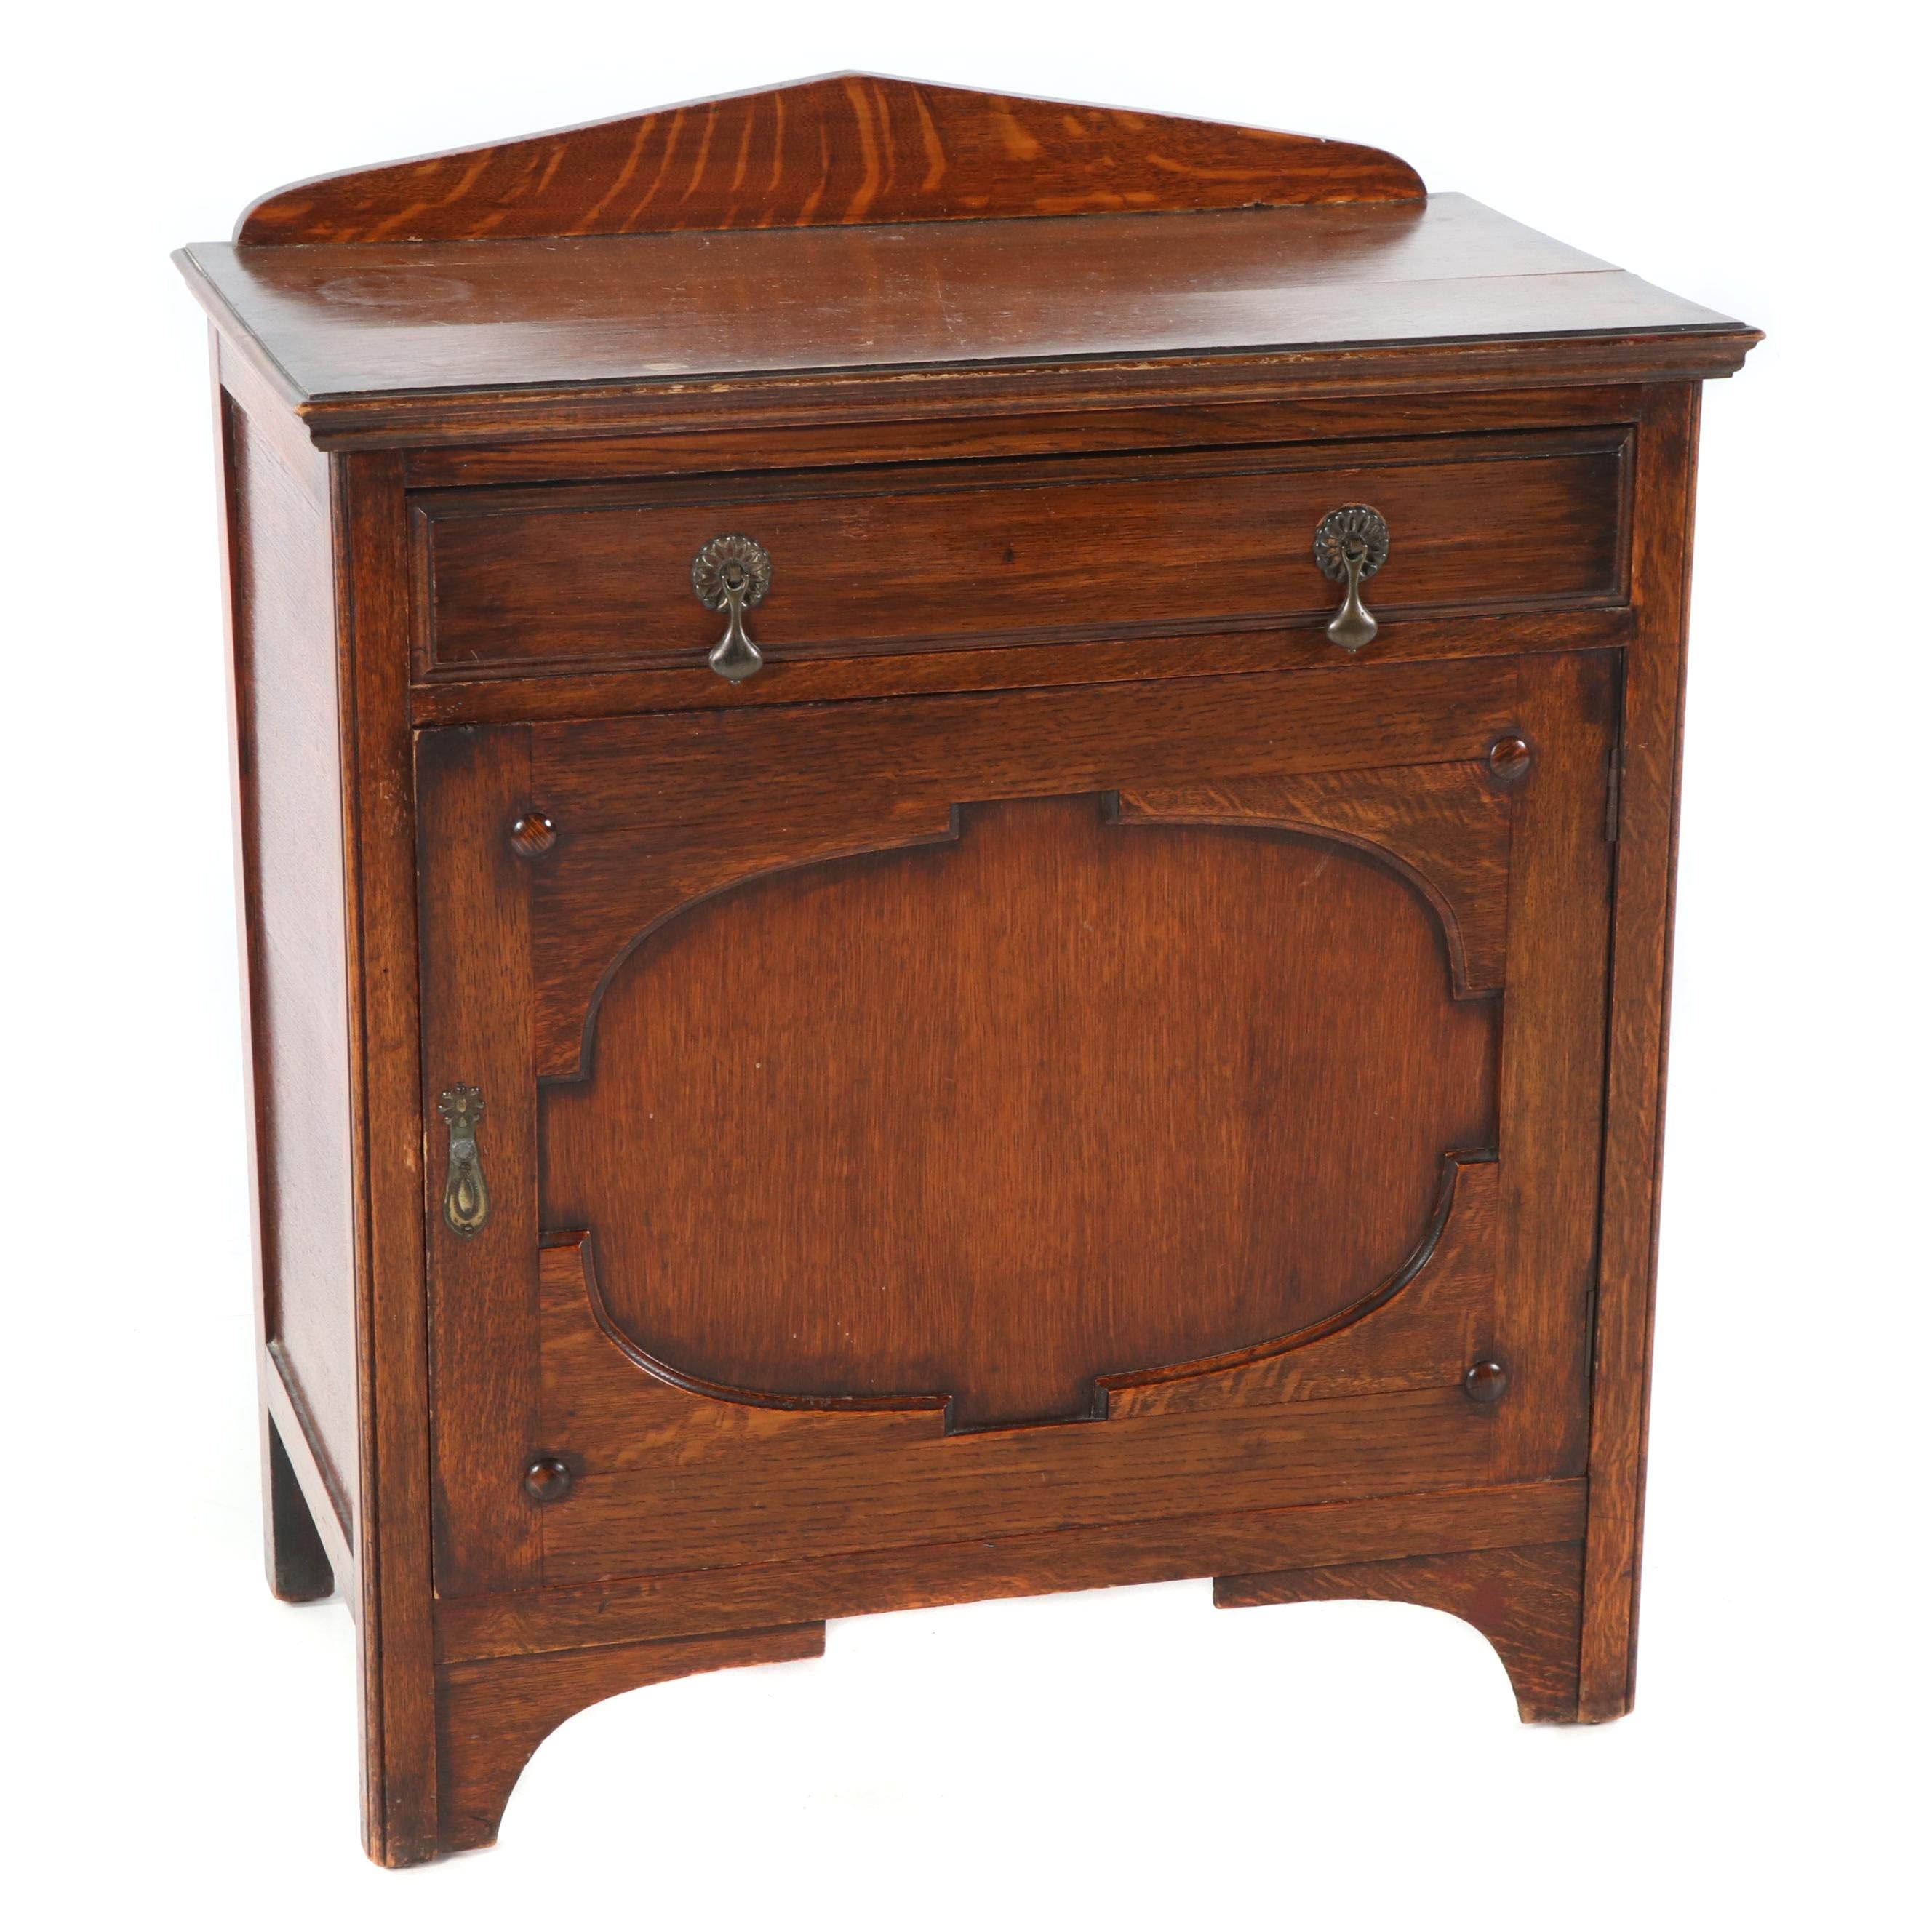 Late Victorian Style Stained Oak Wash Cabinet, 20th Century